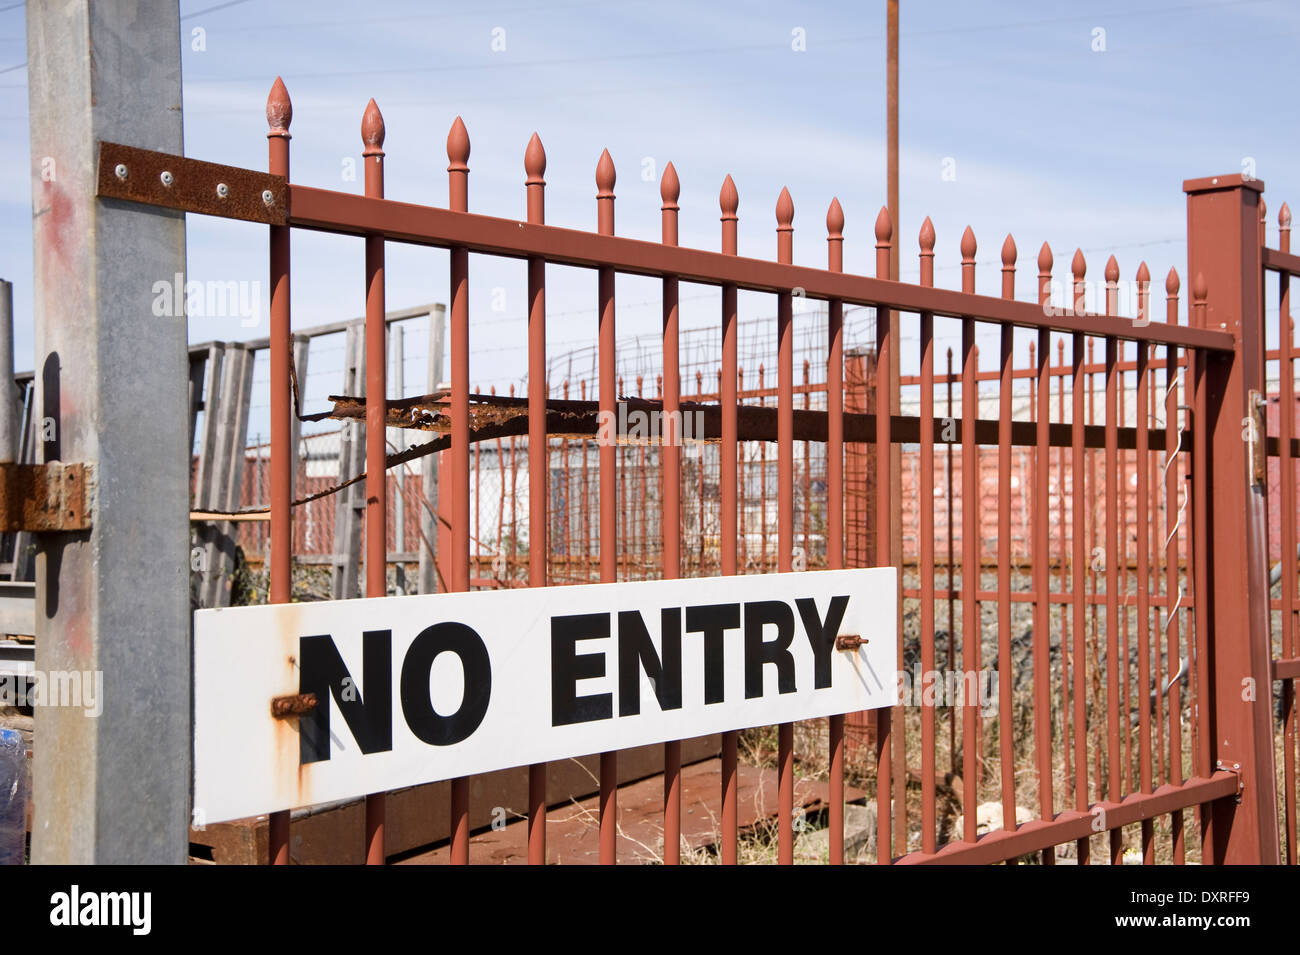 No entry sign on rusty iron security fence - Stock Image